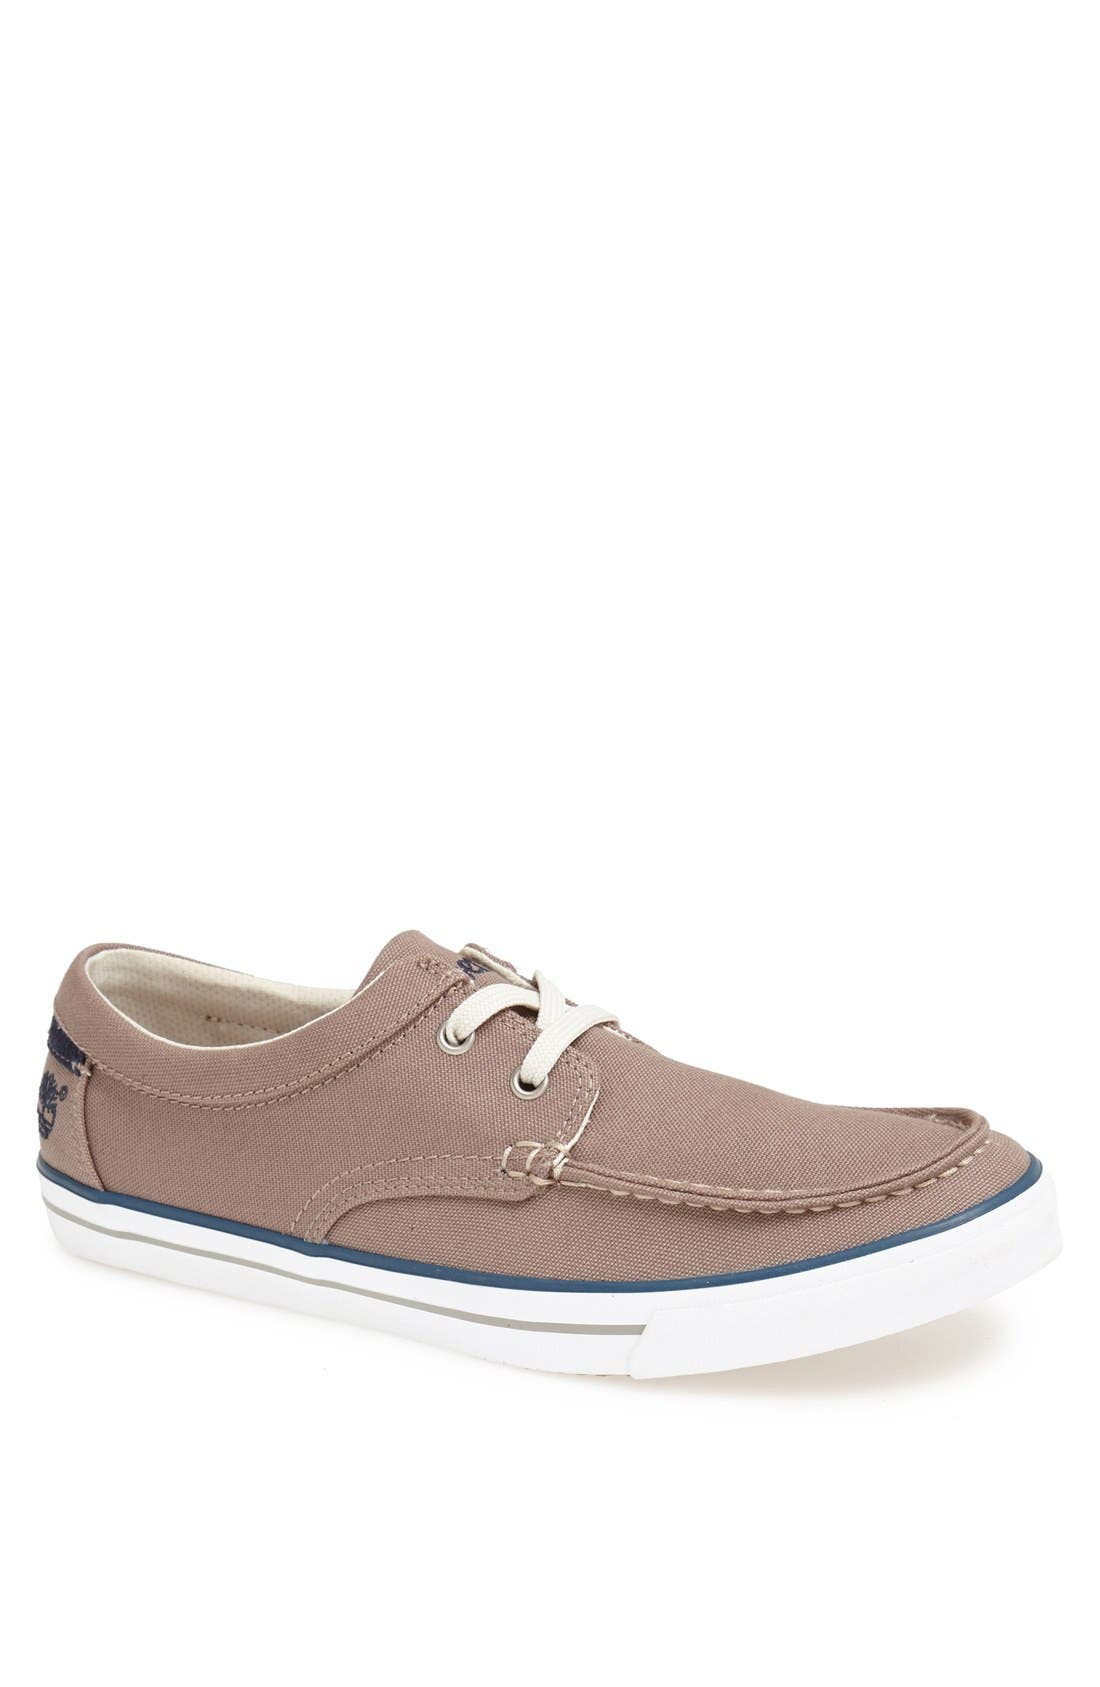 Main Image - Timberland Earthkeepers® 'Hookset' Boat Shoe (Men)